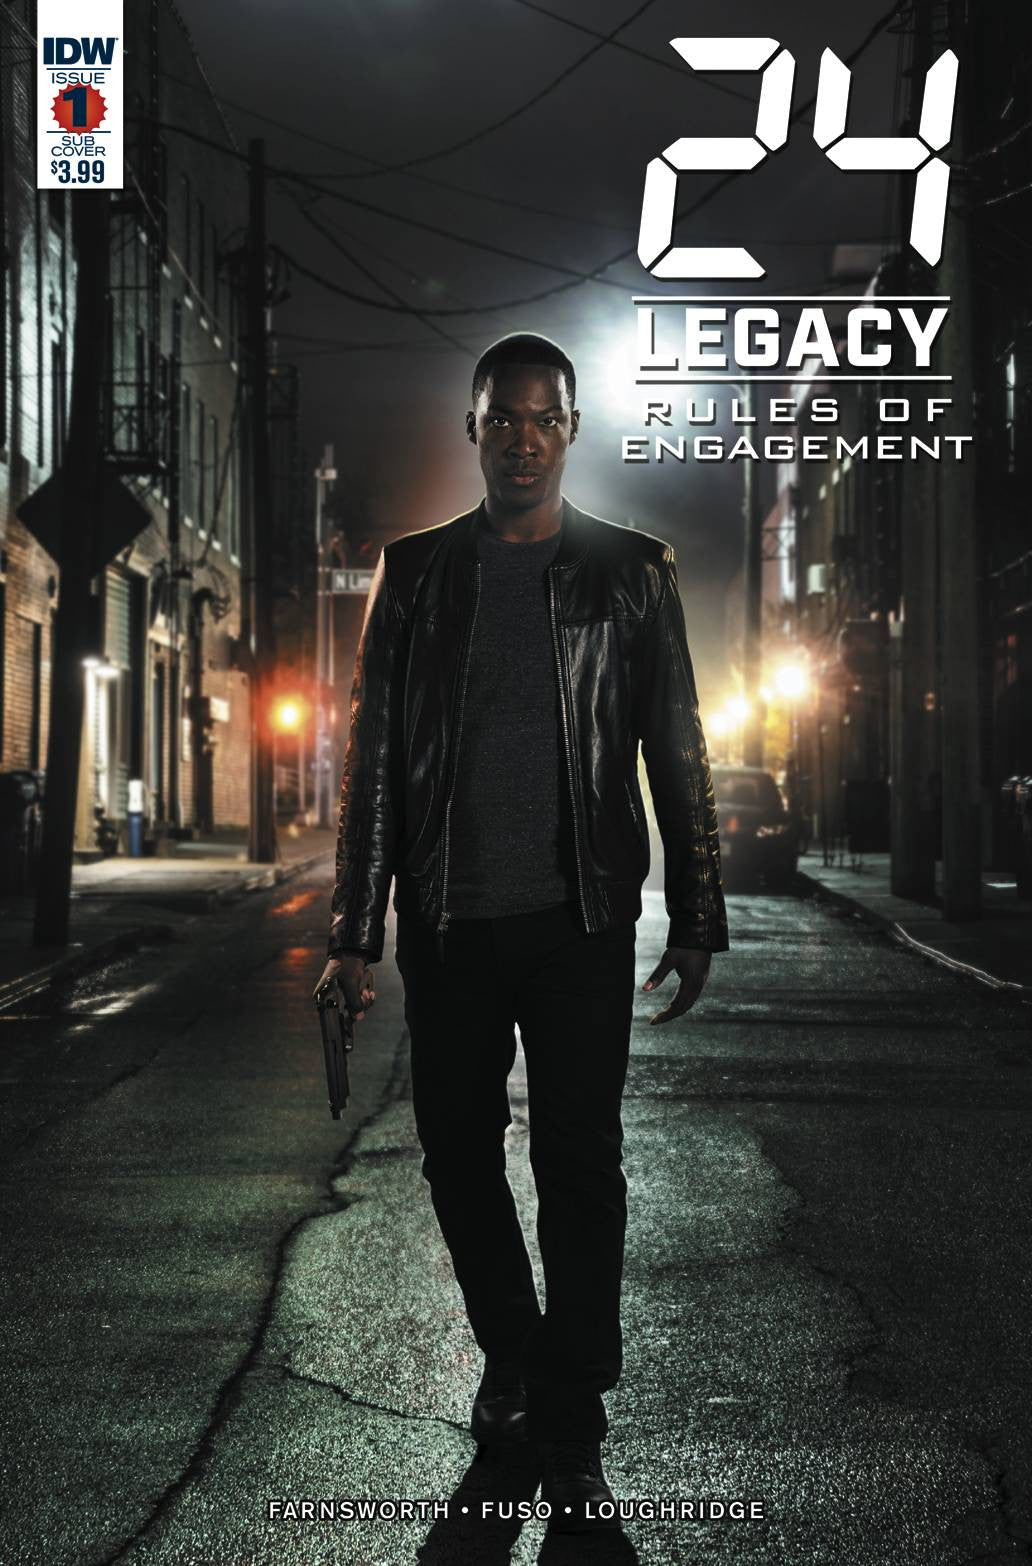 24 LEGACY RULES OF ENGAGEMENT #1